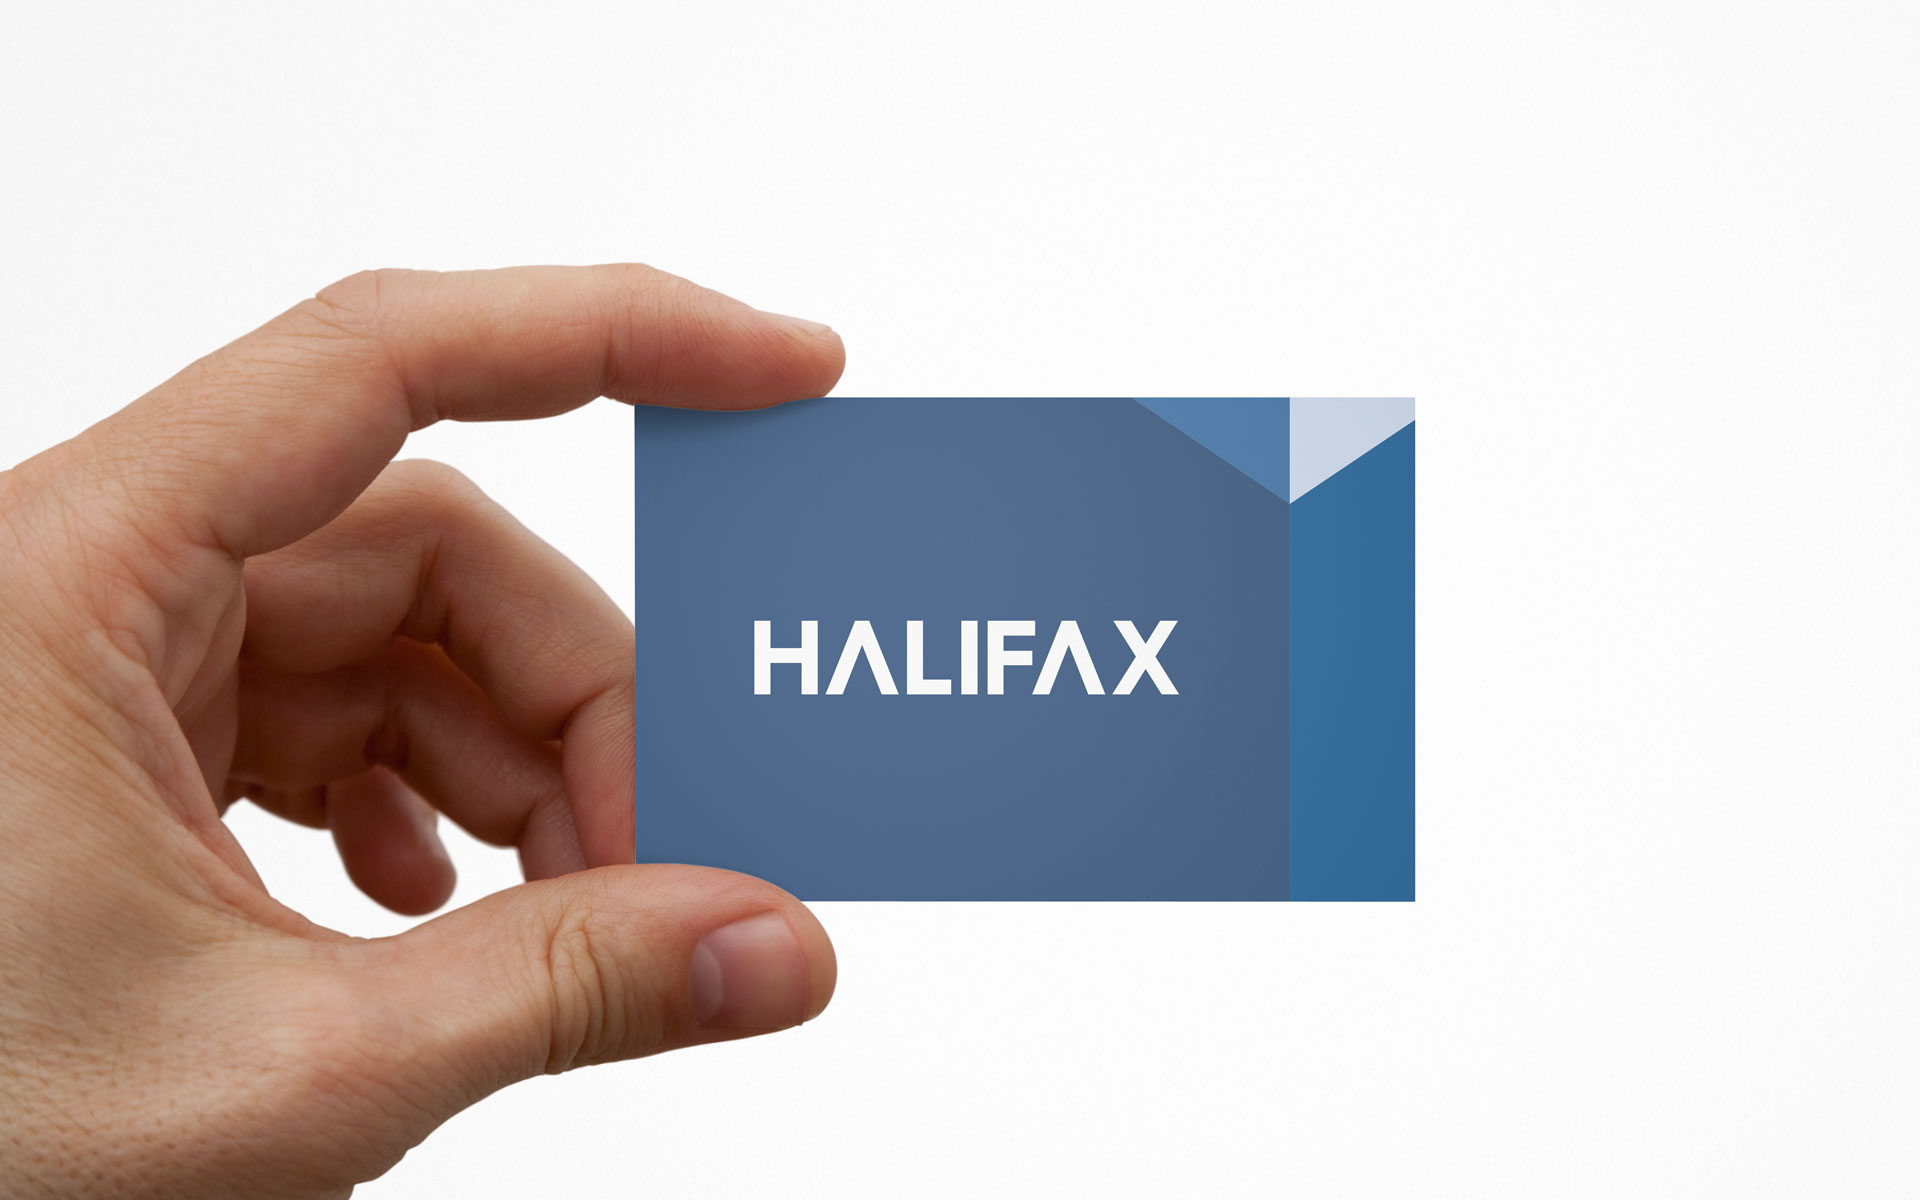 Halifax Business Cards